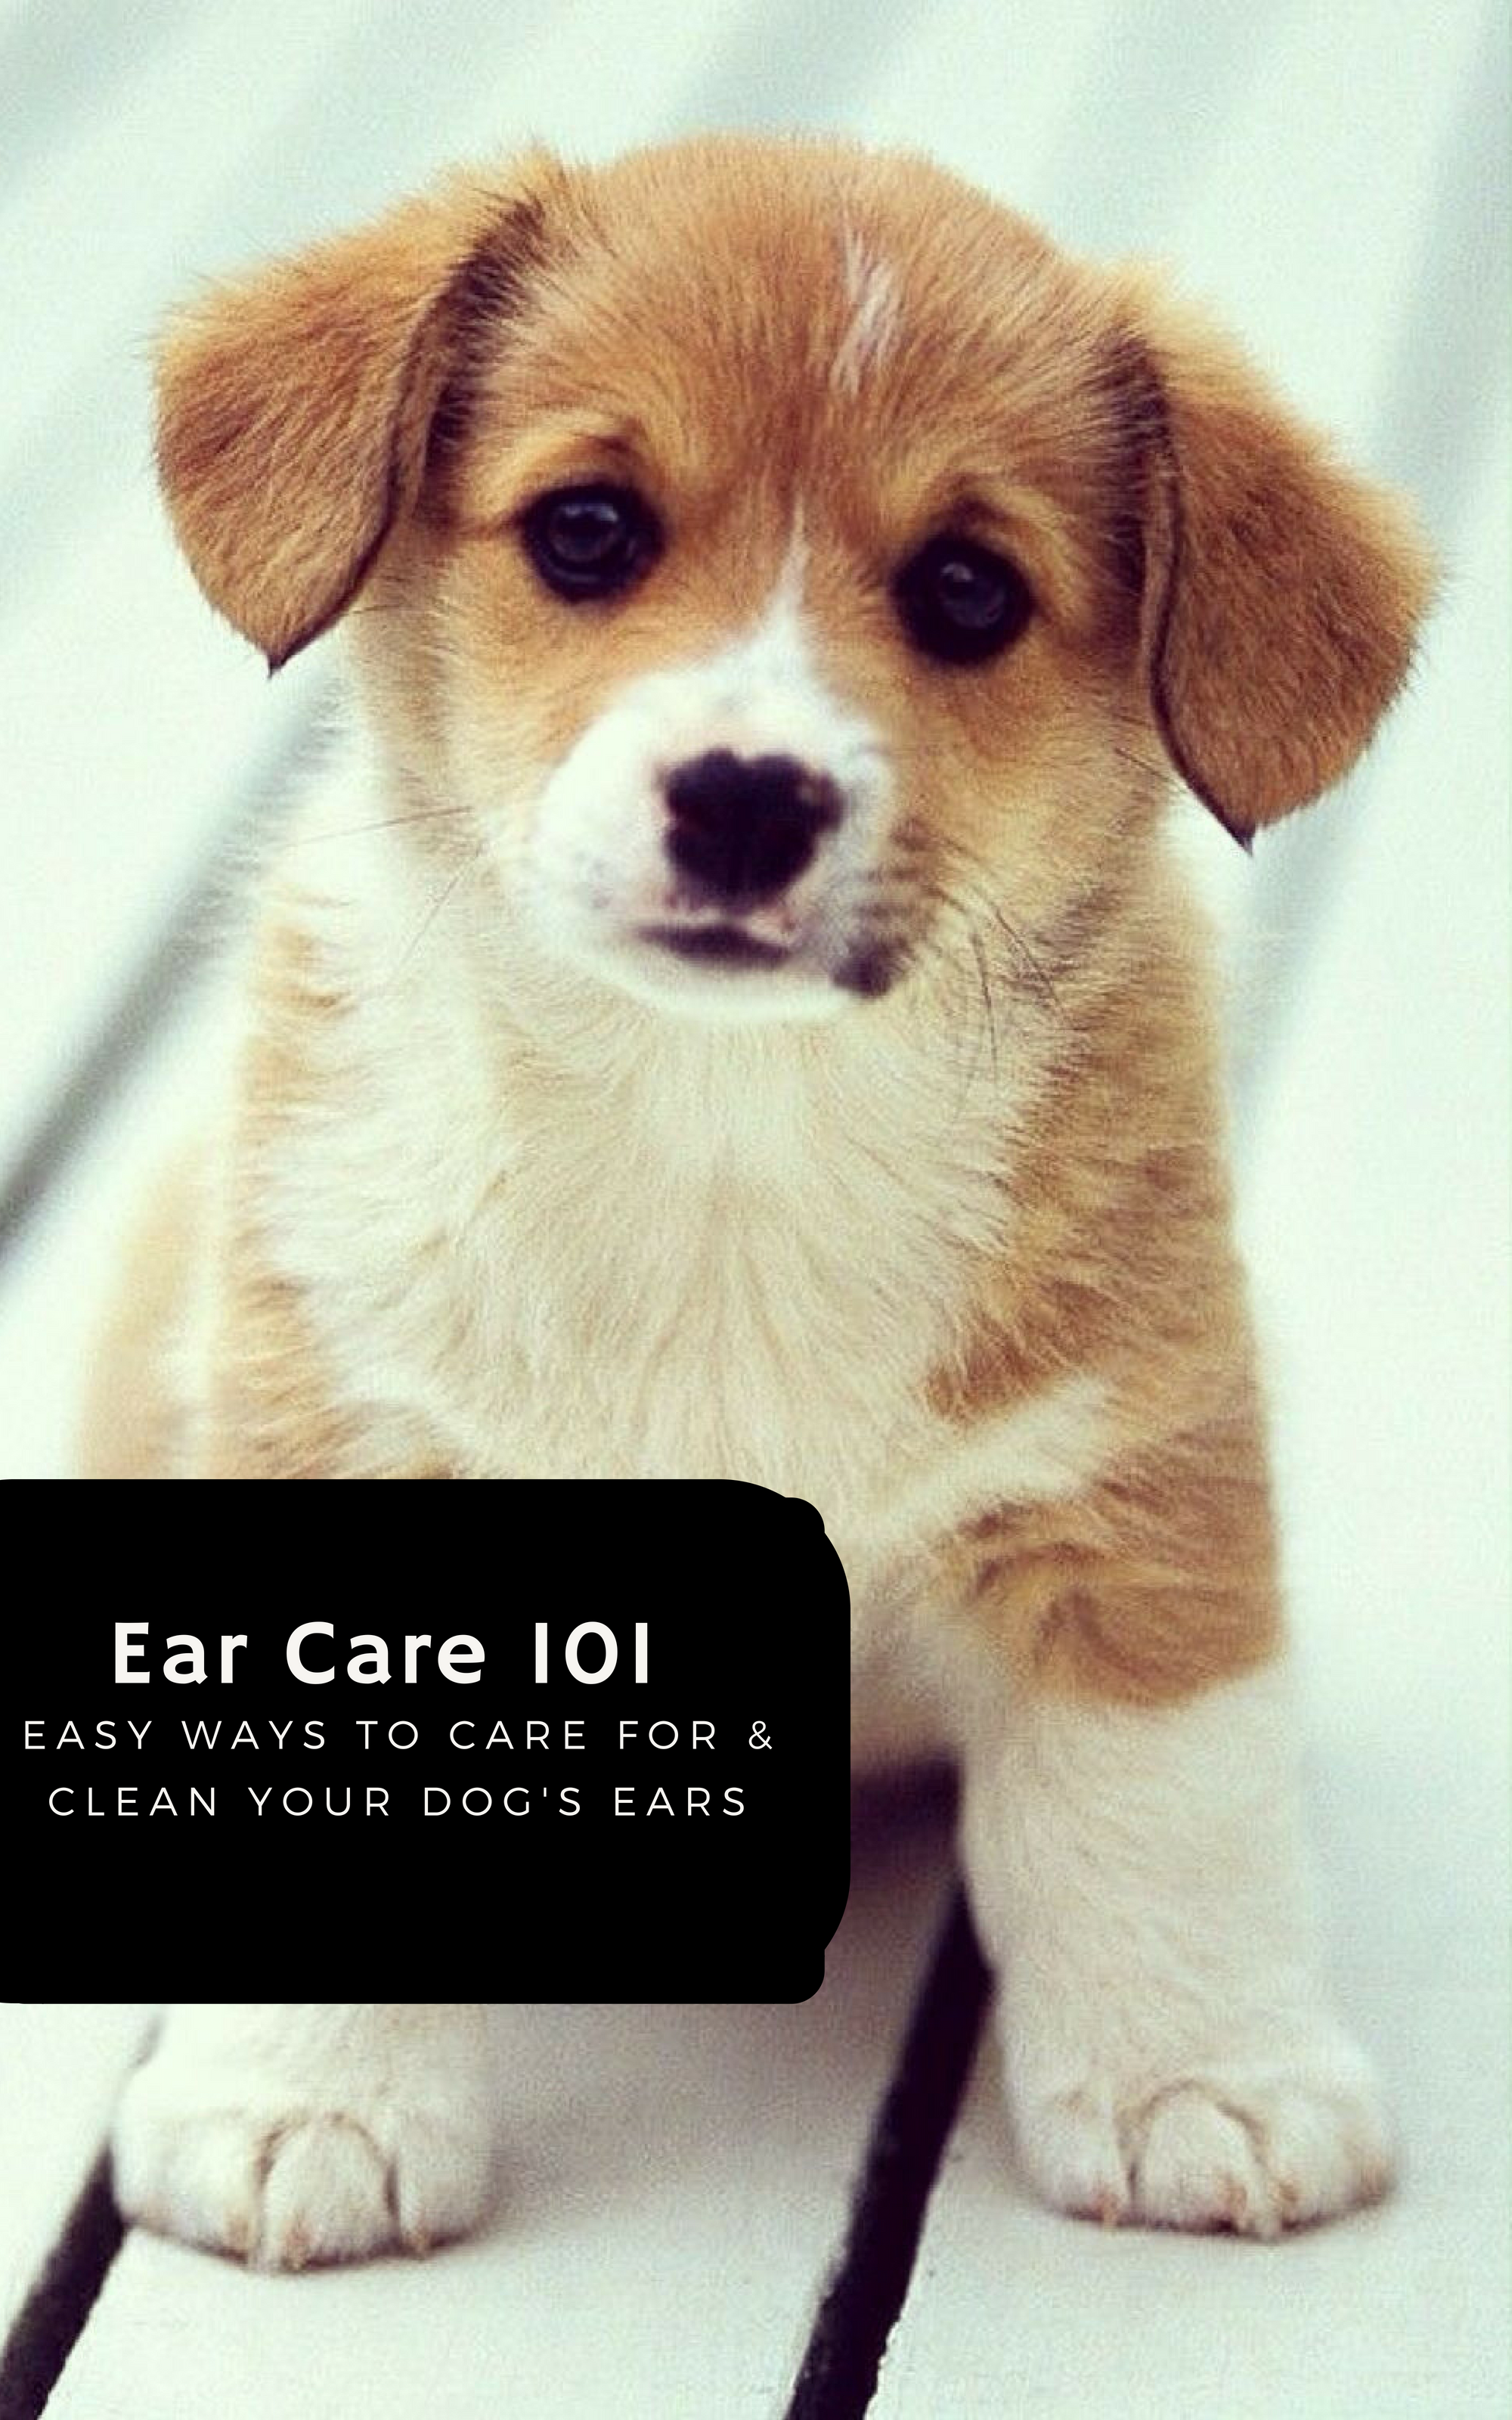 Http Crateandboxreview Com Index Php 2018 06 22 Pet Subscription Box Blog Cleaning Your Dogs Ears Dog Advice Sick Dog Dog Care